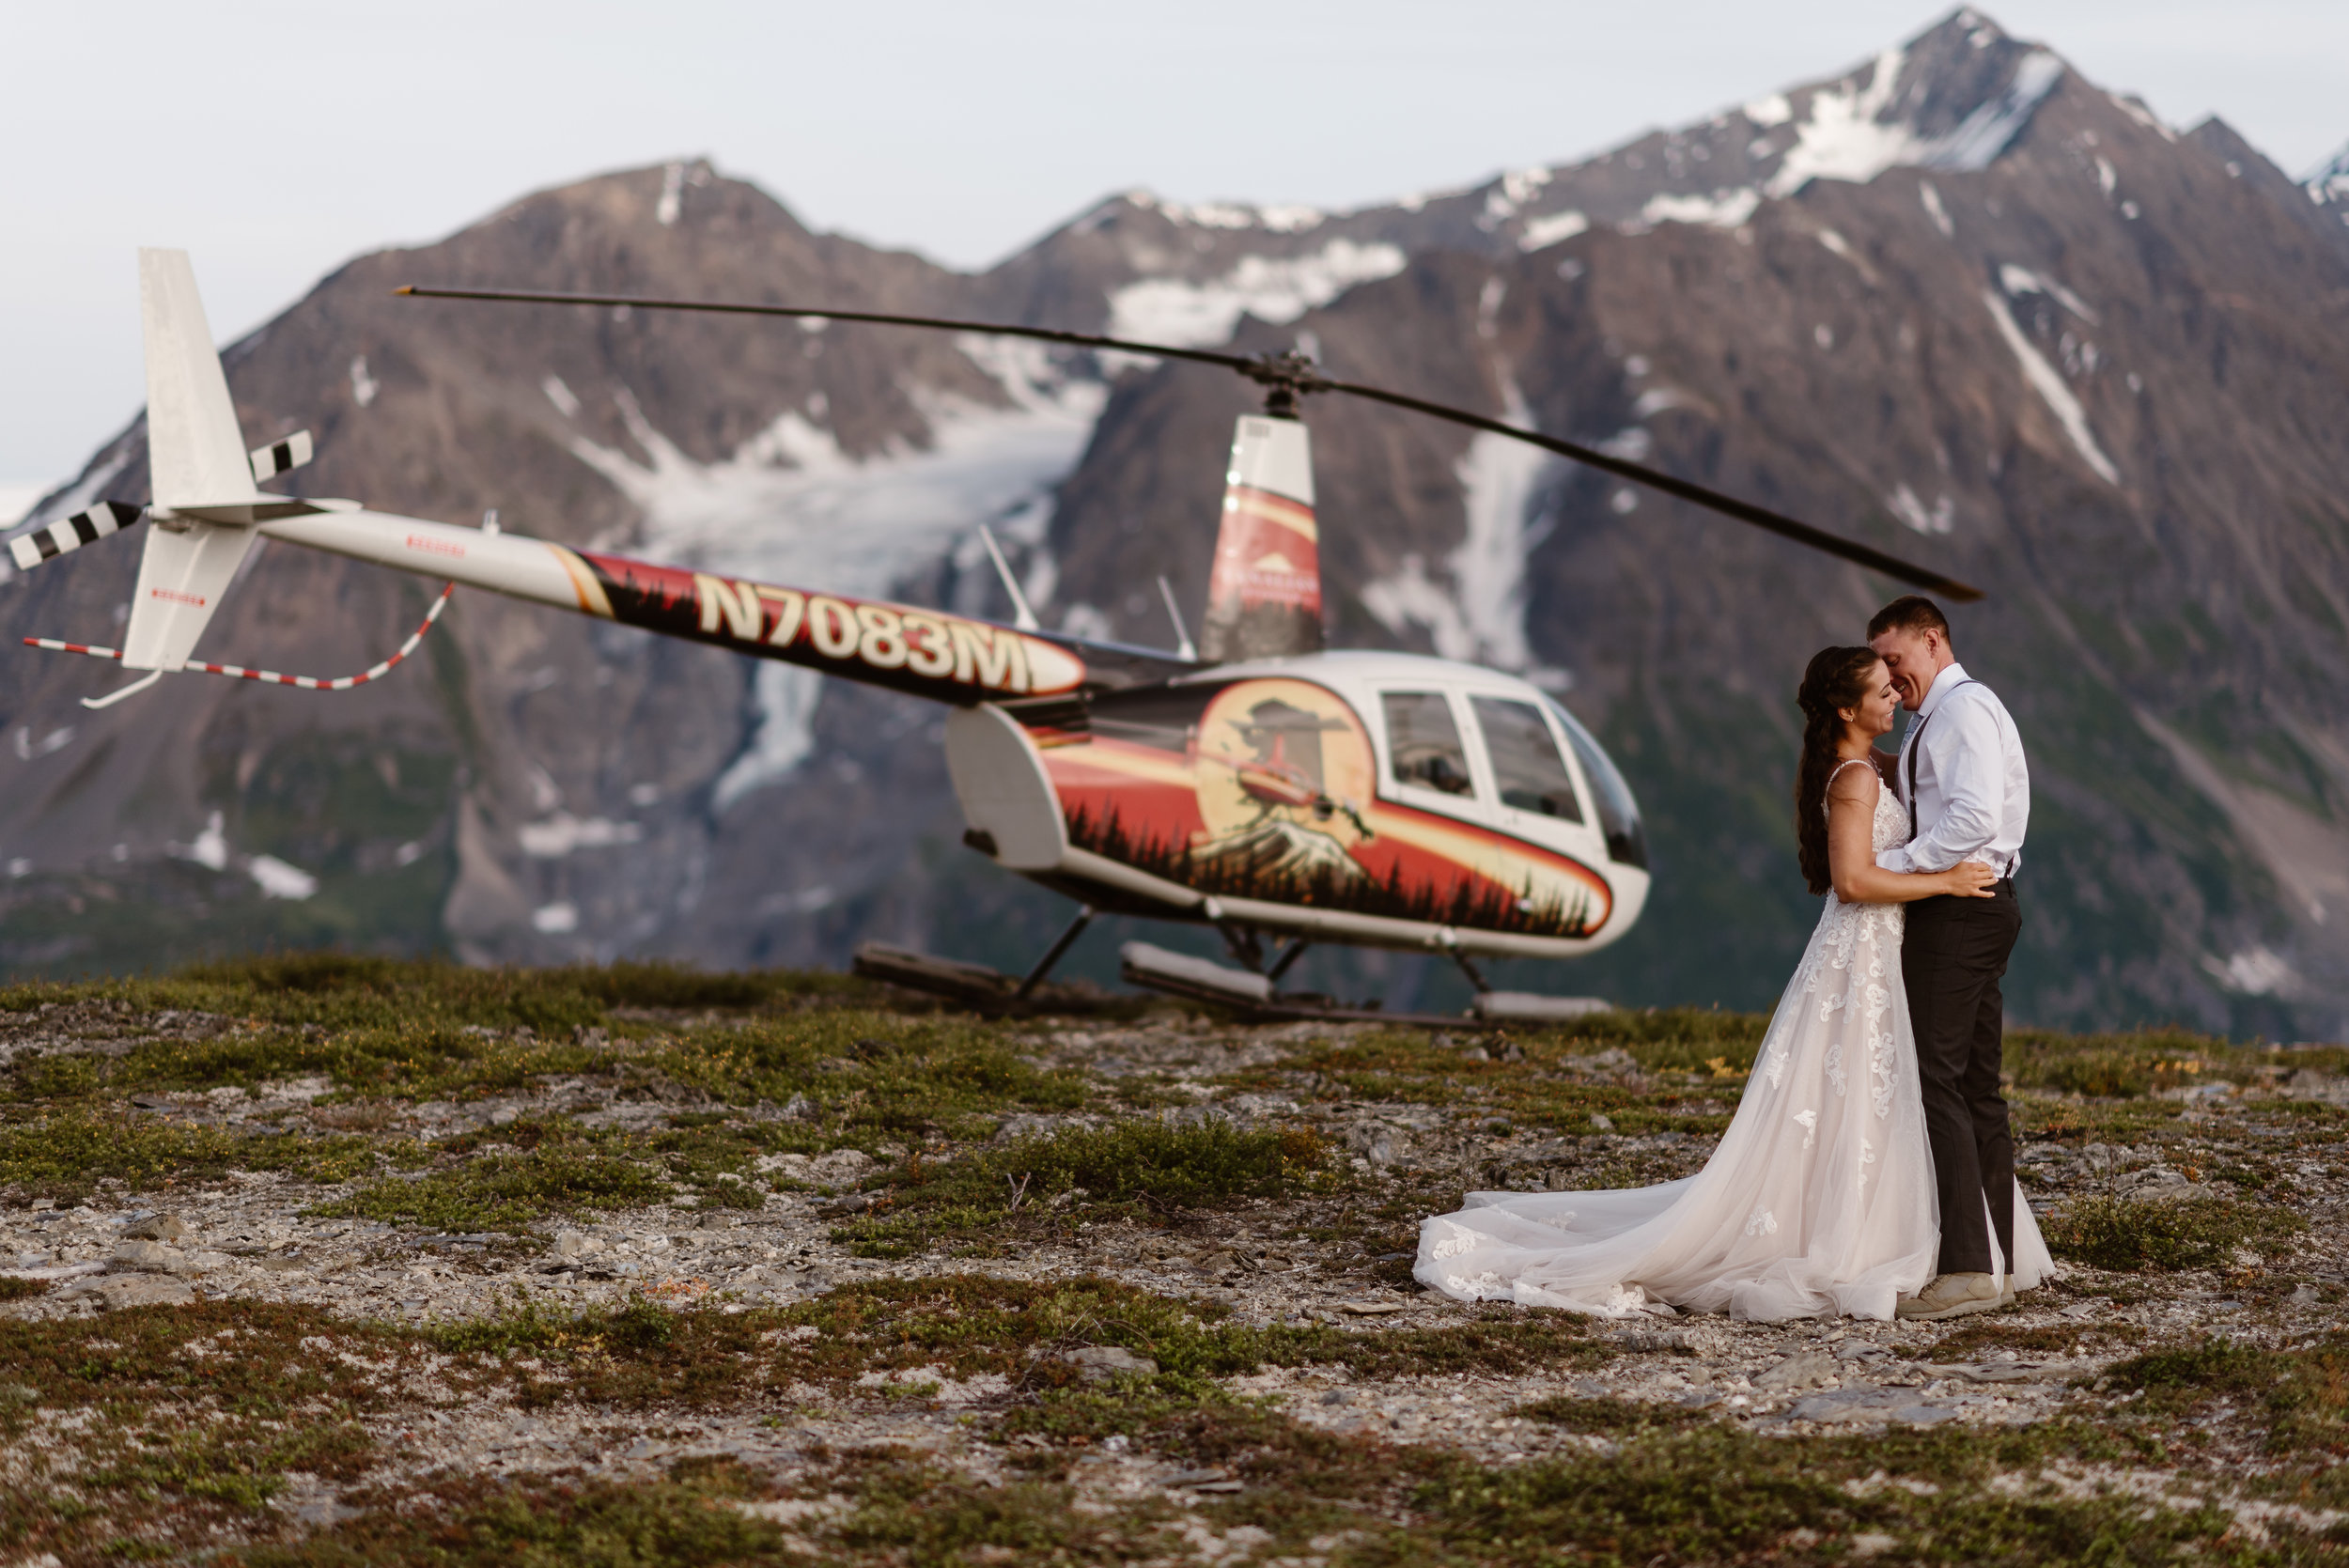 The bride and groom embrace in front of the helicopter on a mountainside, which is parked in front of a granite mountain with an icy peak. These elopement photos were captured by Adventure Instead, Alaska wedding photographers.